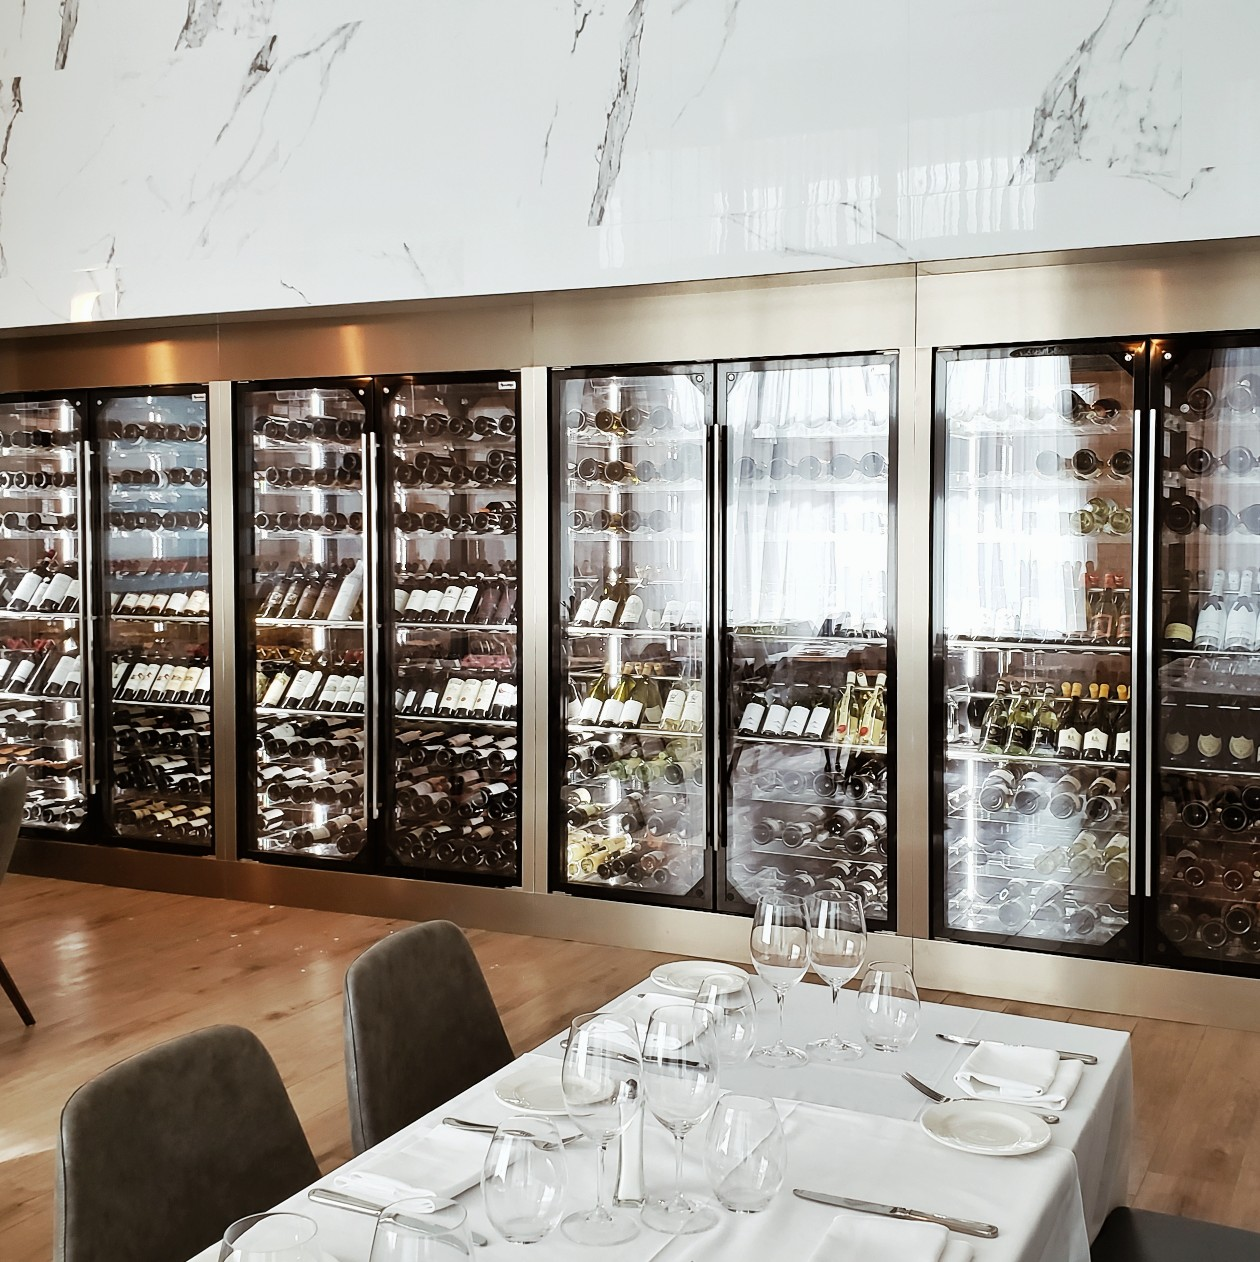 Large wine selection refrigeration inside restaurant